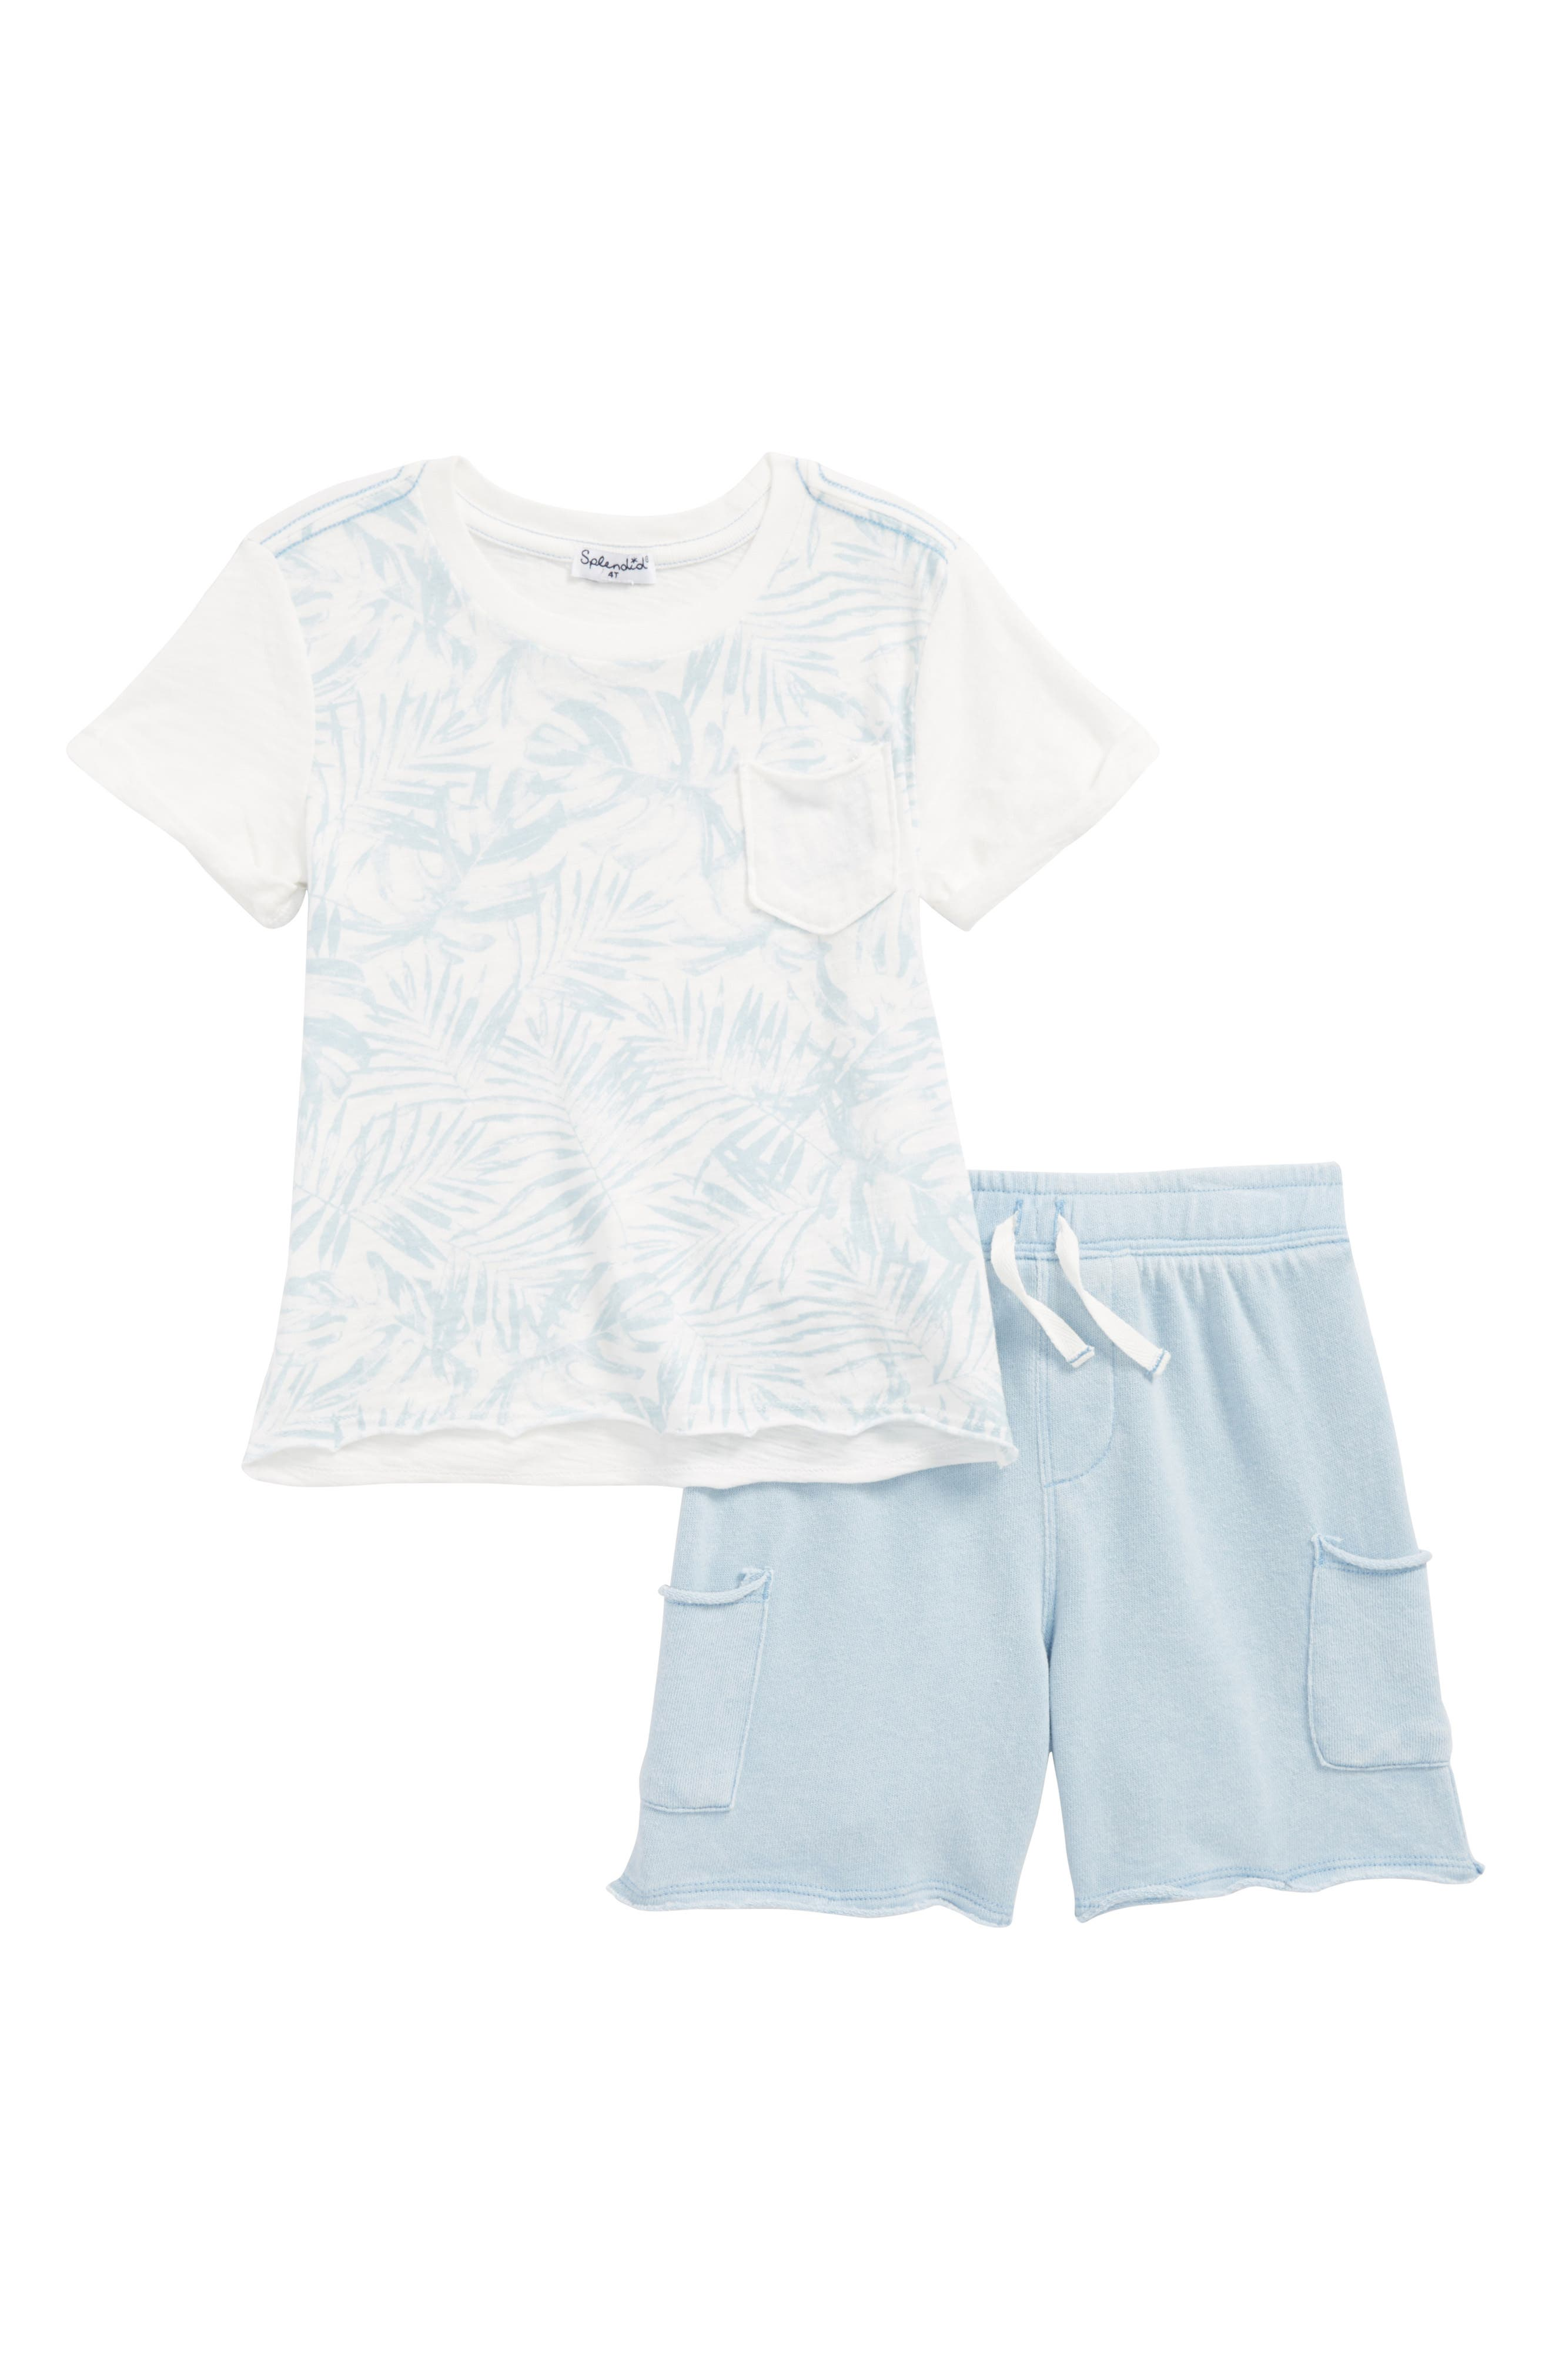 Pocket T-Shirt & Shorts Set,                             Main thumbnail 1, color,